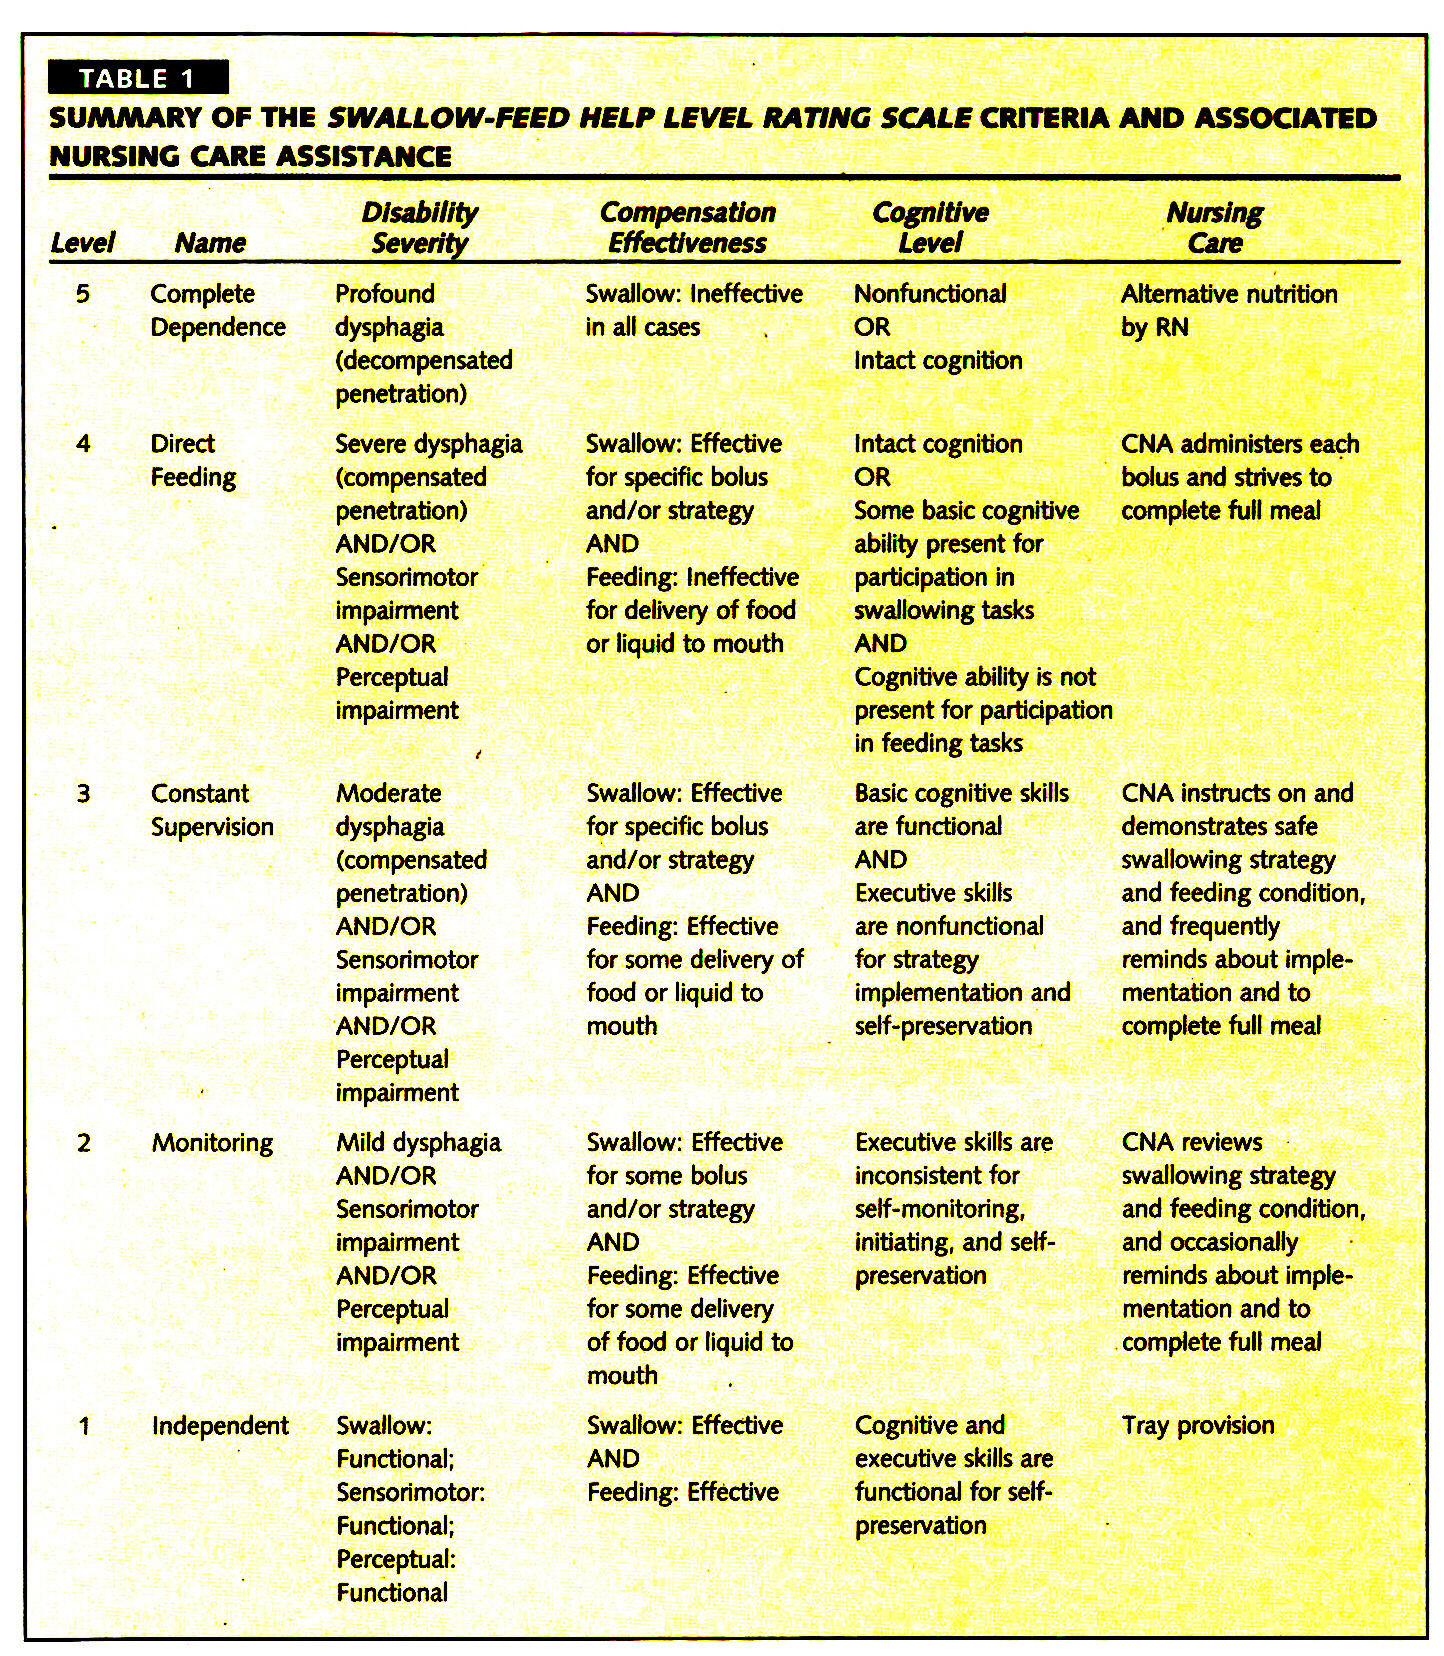 TABLE 1SUMMARY OF THE SWALLOW-FEED HELP LEVEL RATING SCALE CRITERIA AND ASSOCIATED NURSING CARE ASSISTANCE